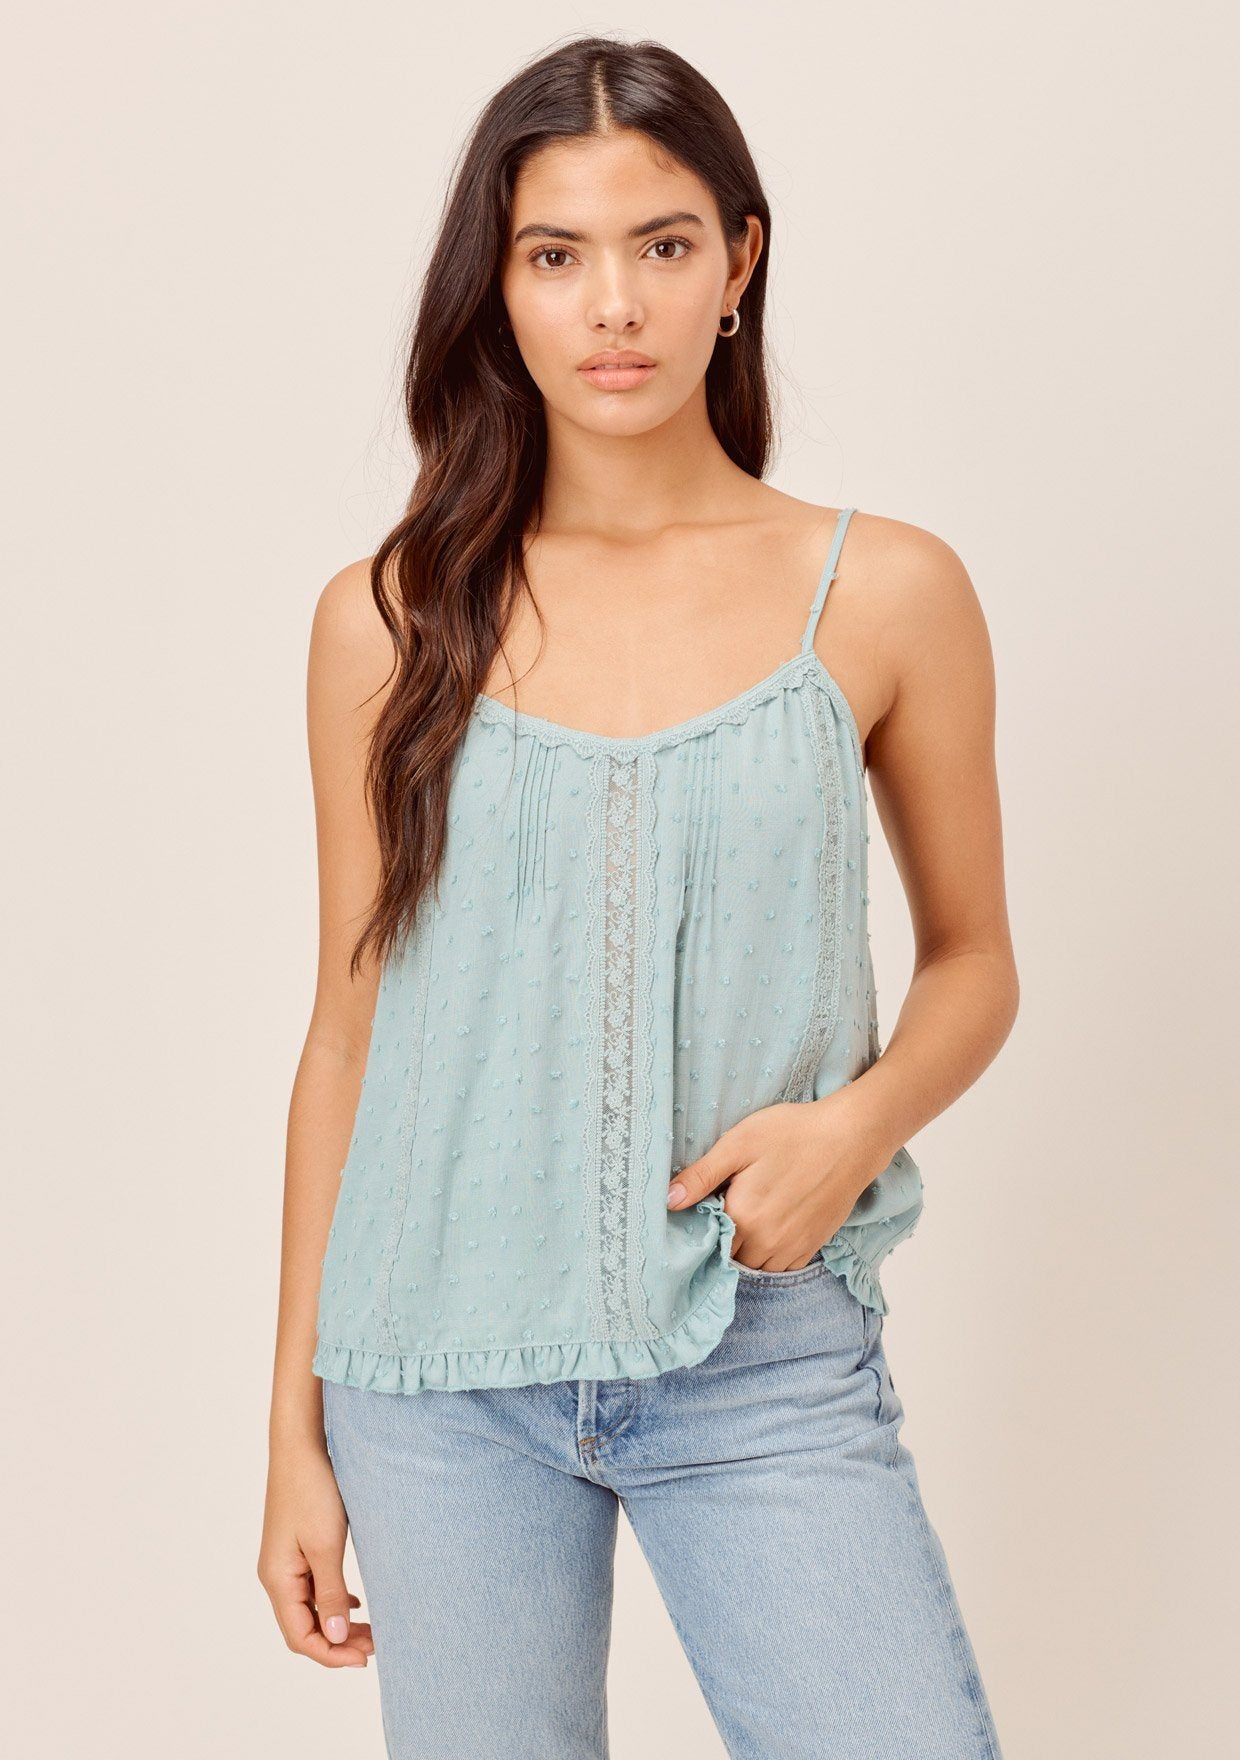 [Color: Seafoam] Lovestitch seafoam Bohemian, swiss dot cami with adjustable spaghetti straps and lace trim detail.